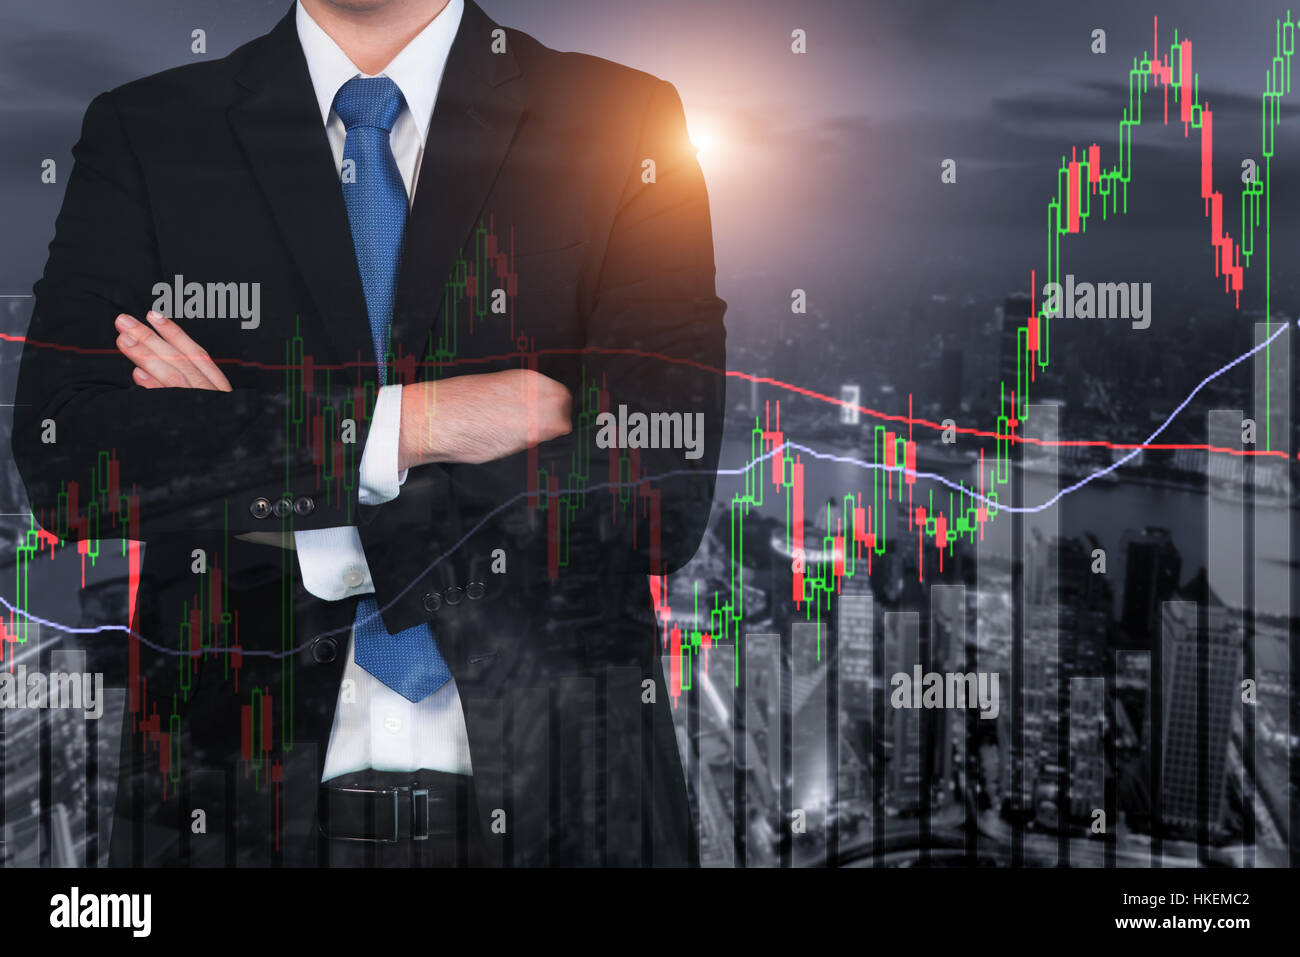 Candlestick chart patterns uptrend ,Stock Market on Shanghai cityscape at night background - Stock Image